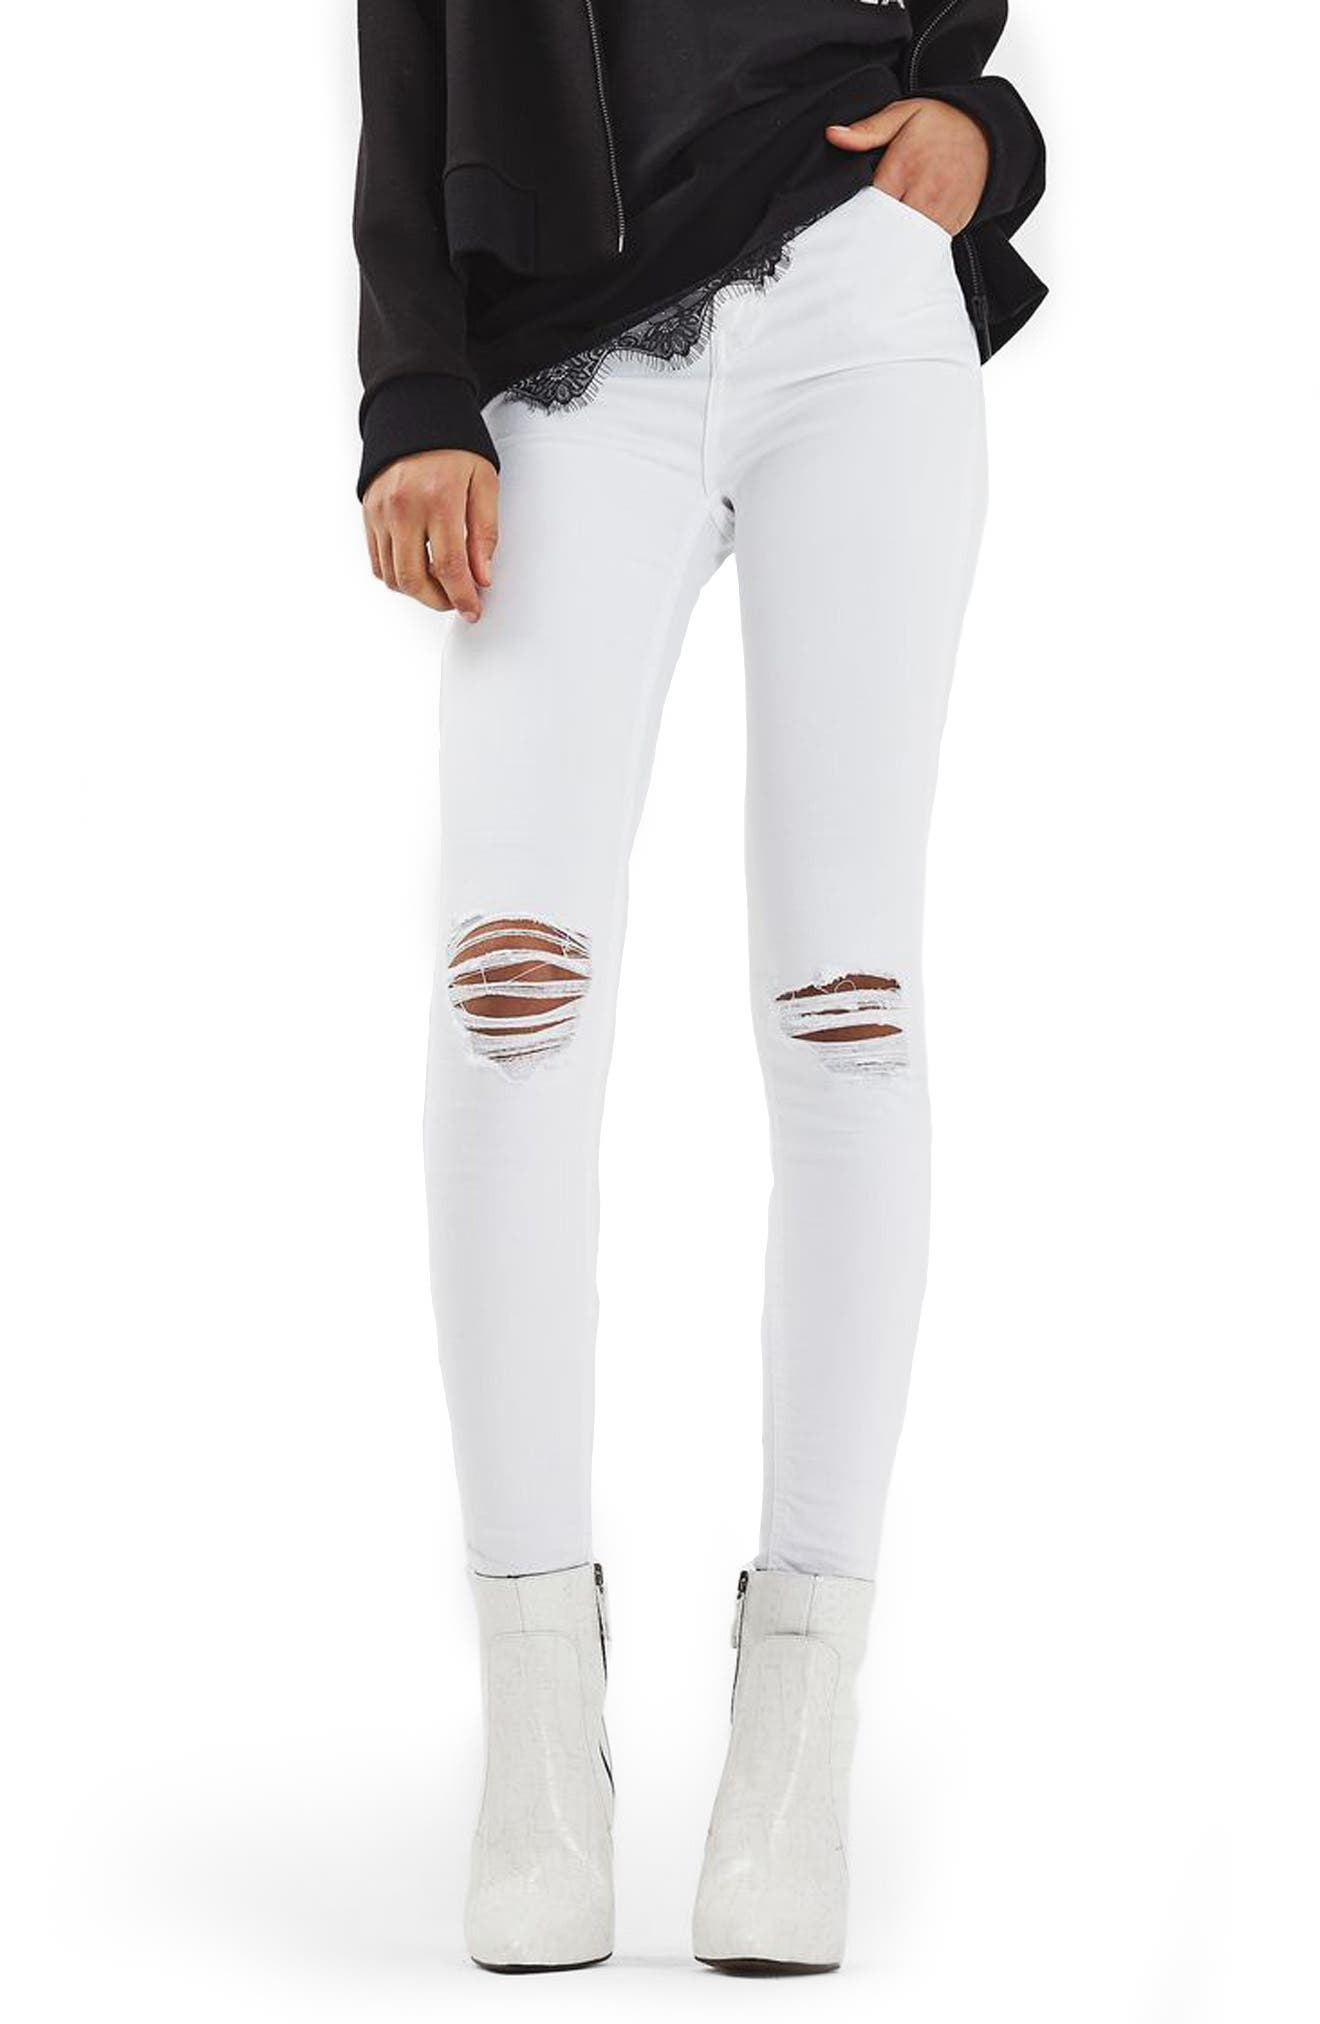 Jamie Ripped Skinny Jeans,                             Main thumbnail 1, color,                             White